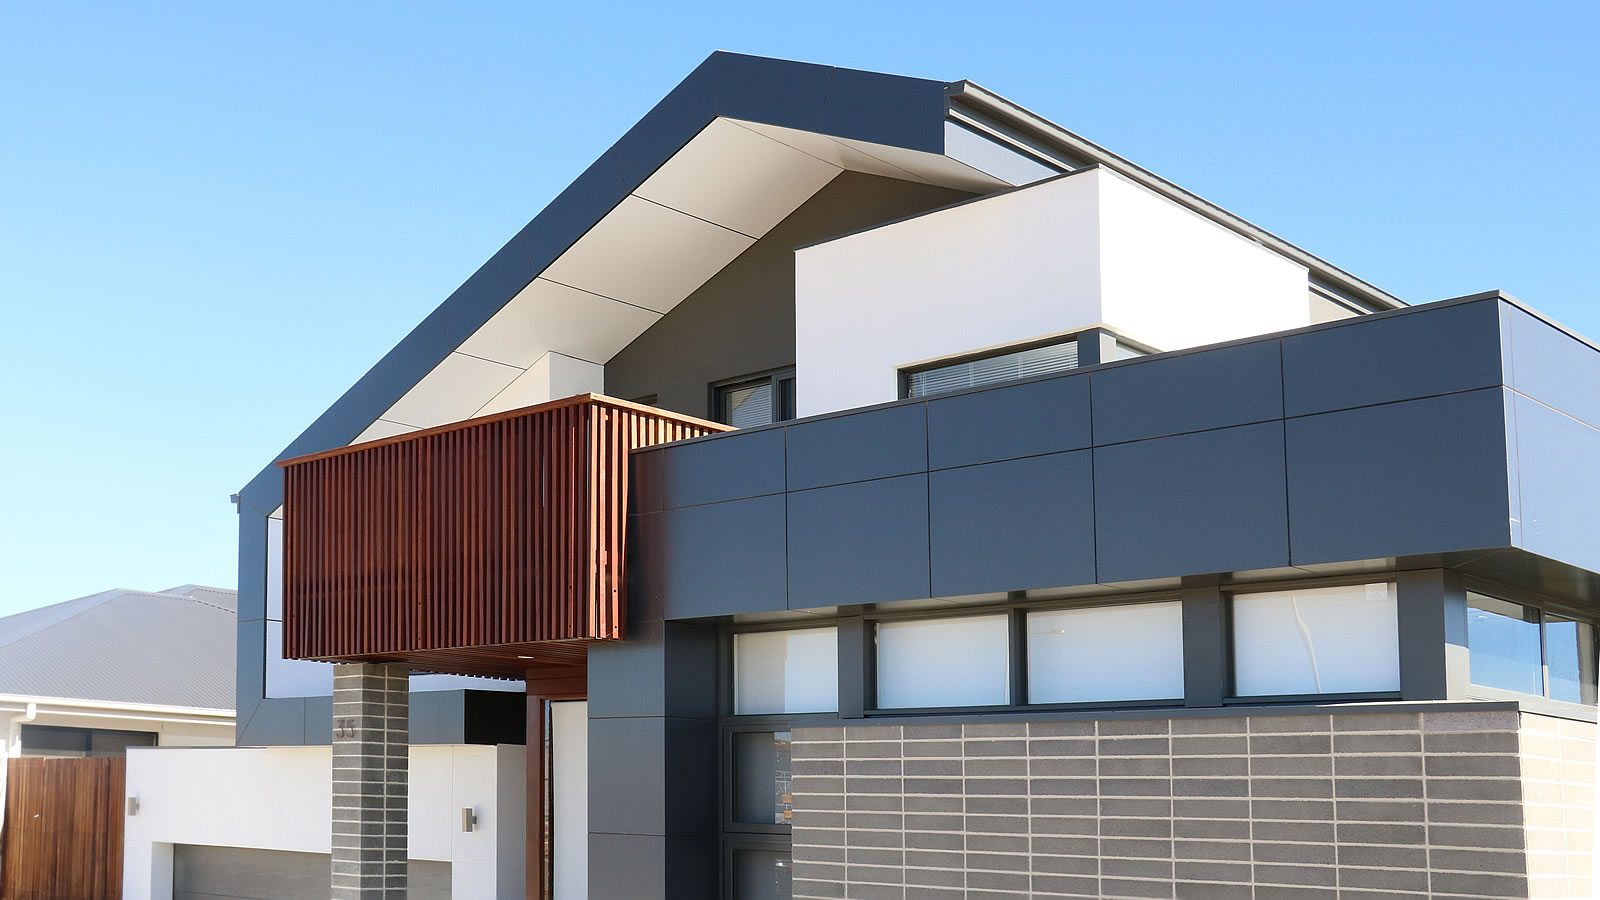 Versatile Alucobond Is Material Of Choice For Contemporary